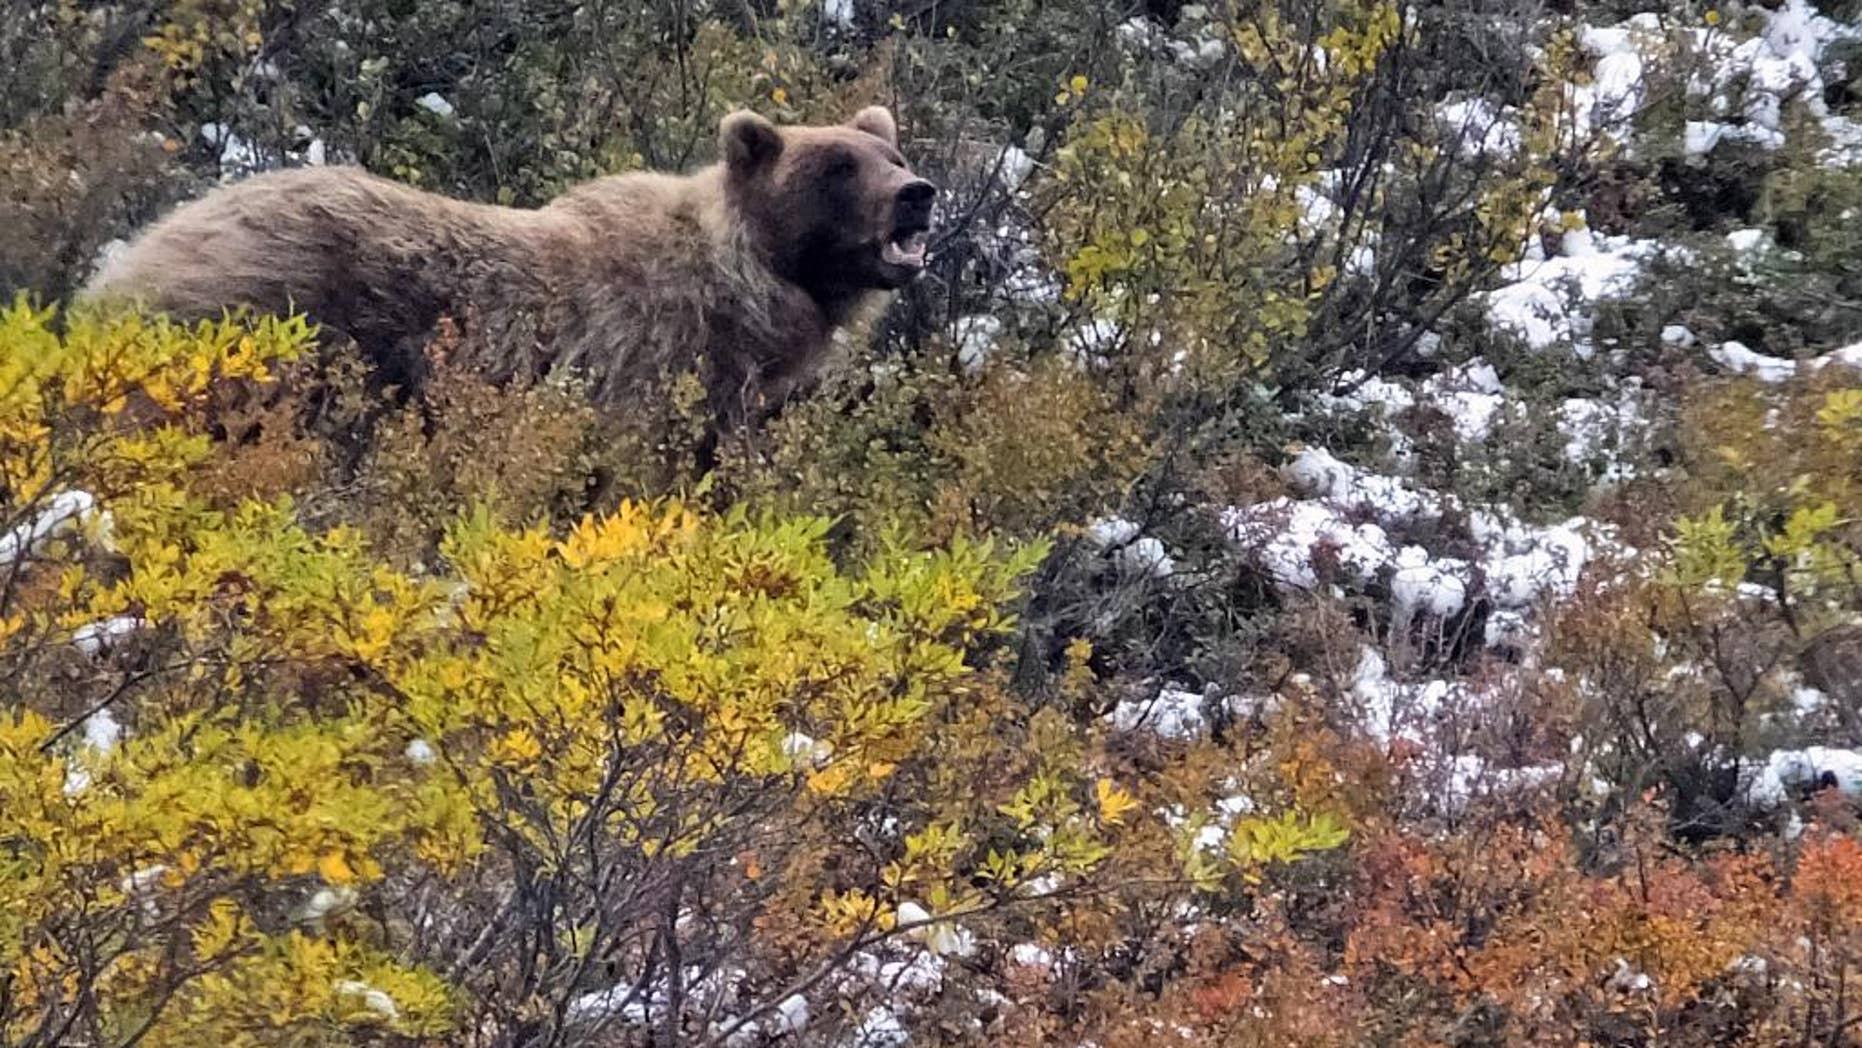 FILE - In this Monday, Aug. 31, 2015, file photo, a grizzly bear looks up from foraging, in Denali National Park and Preserve, Alaska.